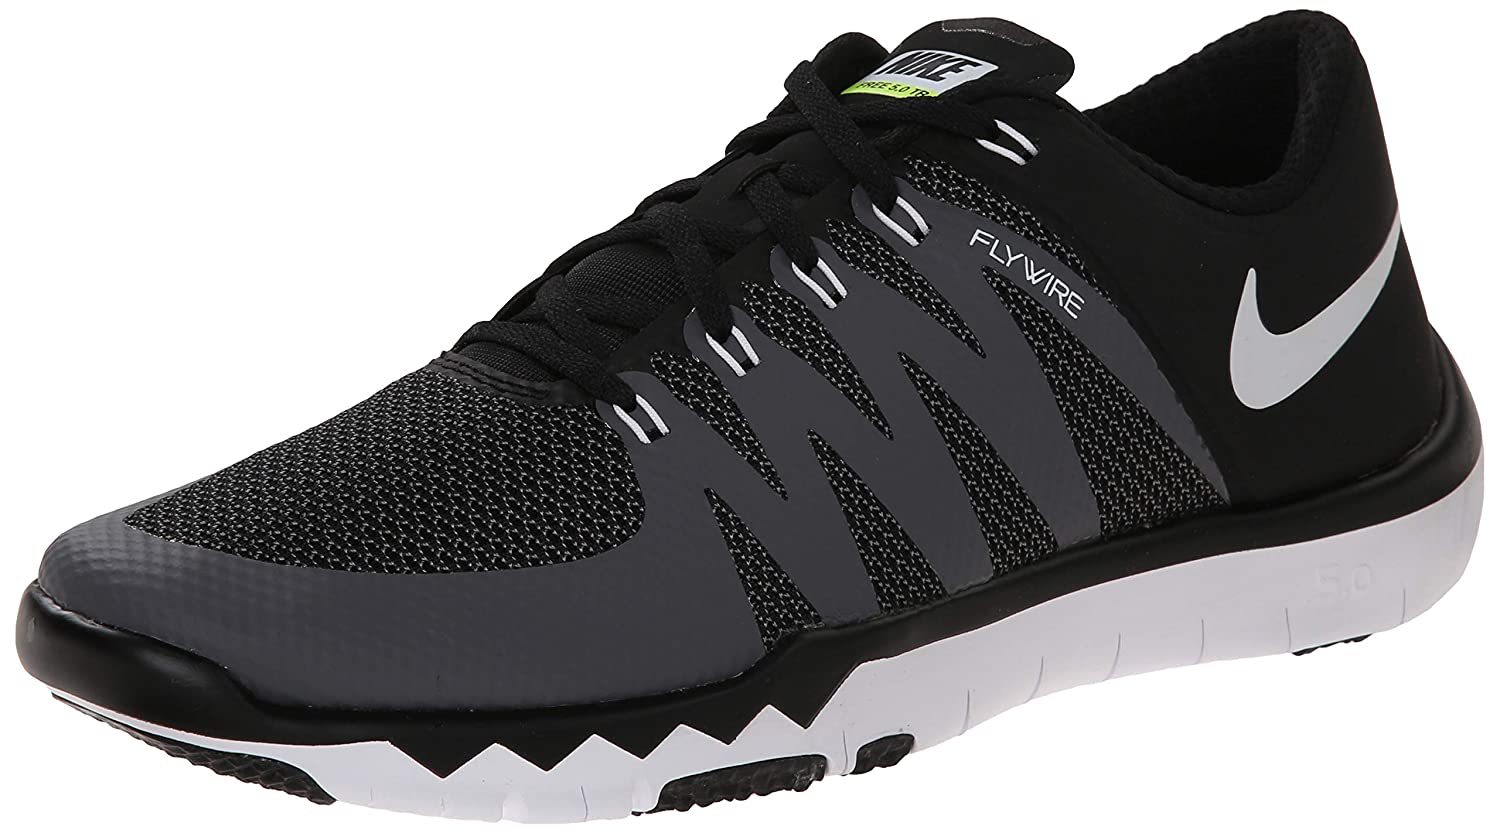 hot sale online c8118 6597b Nike Free 5.0, Men's Running Shoes